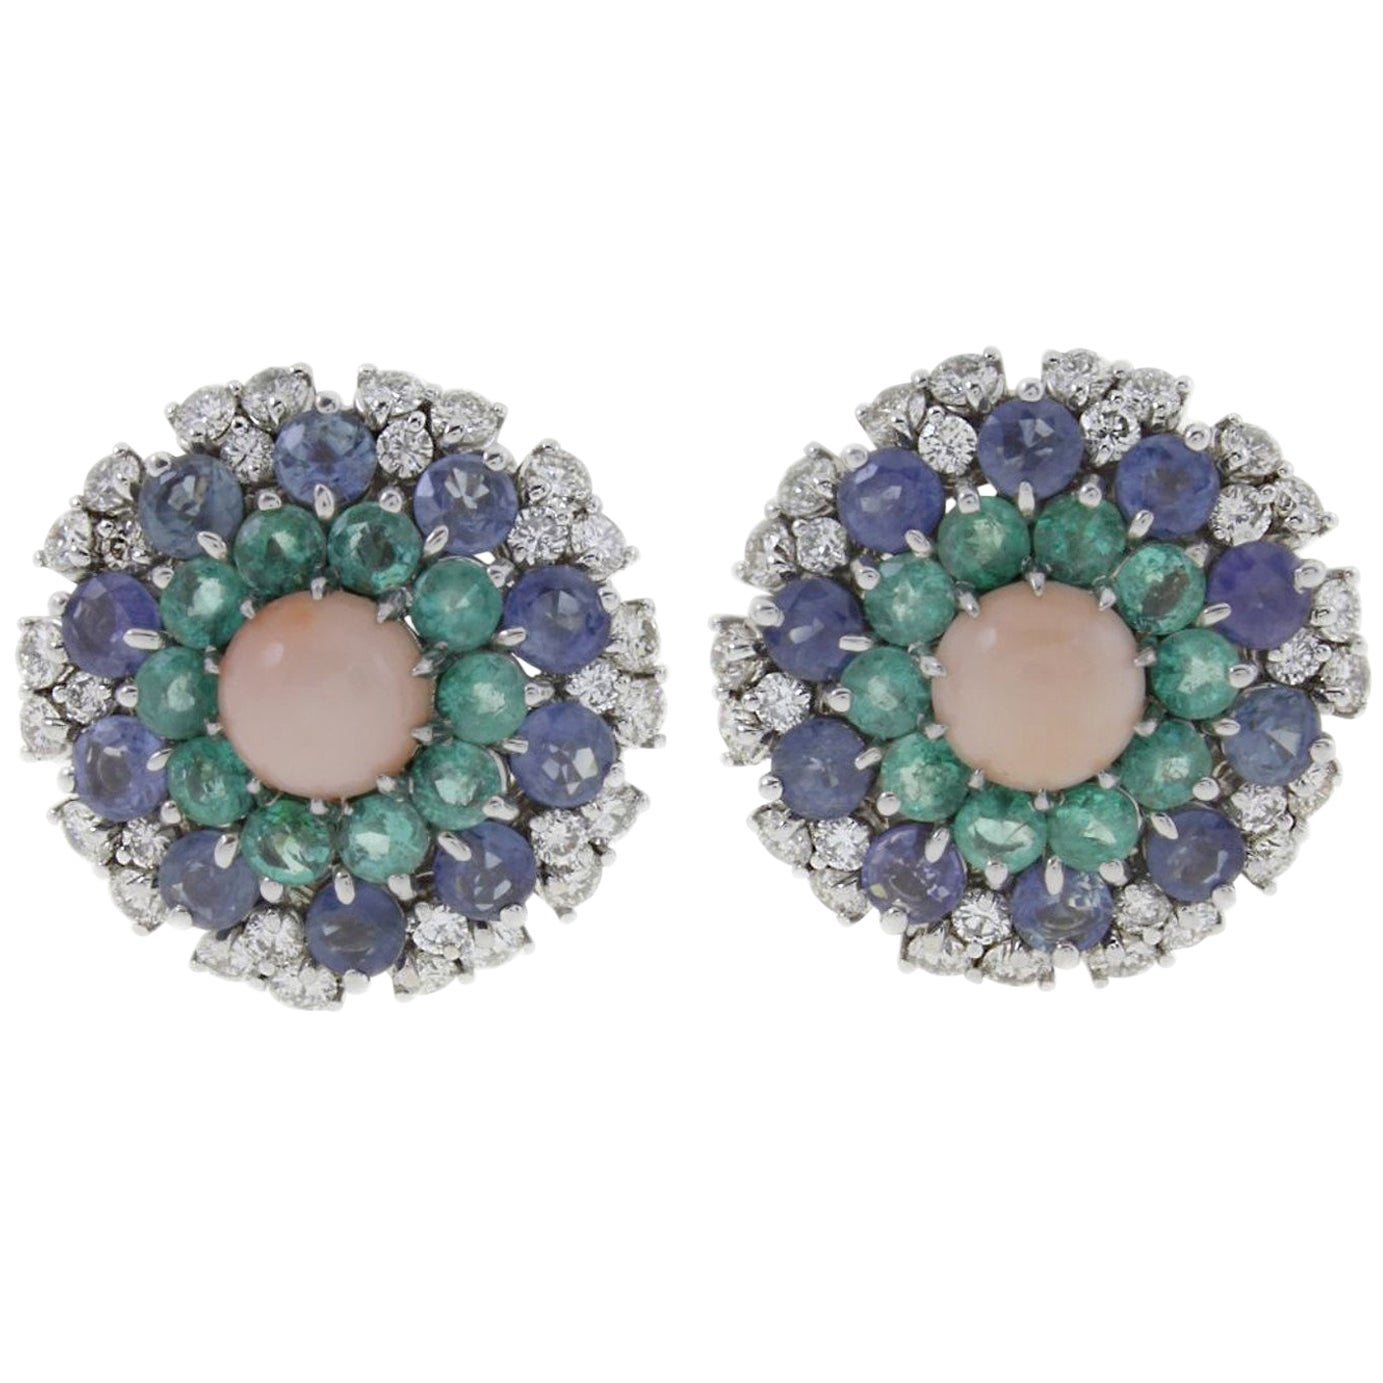 White Diamonds, Blue Sapphires, Emeralds, Pink Coral White Gold Stud Earrings